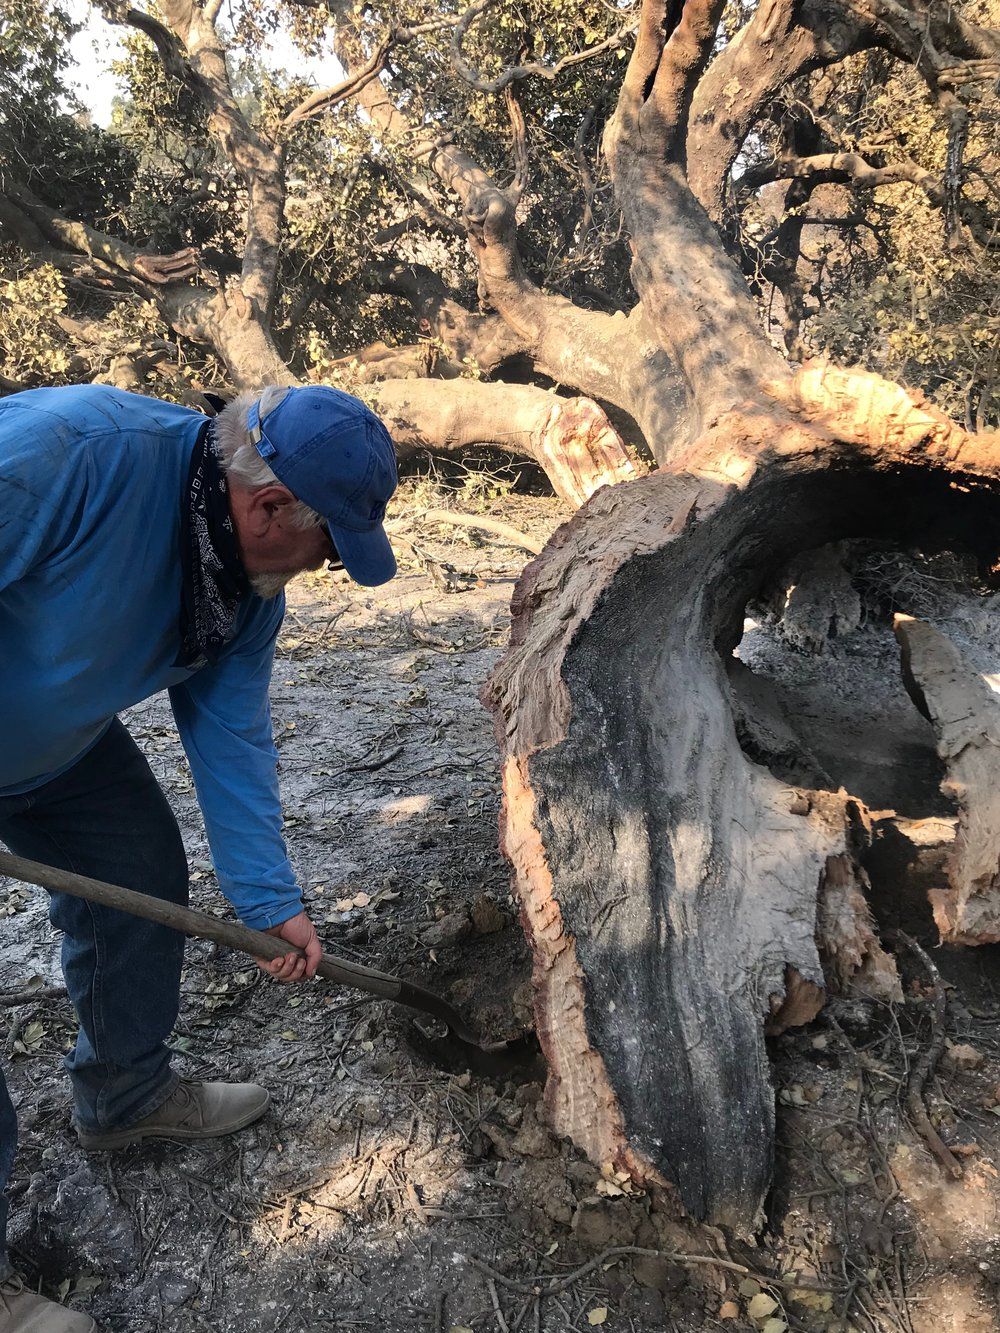 MANAGER/CARETAKER BUZZ GLASKY puts out smoldering hot spots near Baba's Tree. (Photo: Ginger Glasky, December 6, 2017)